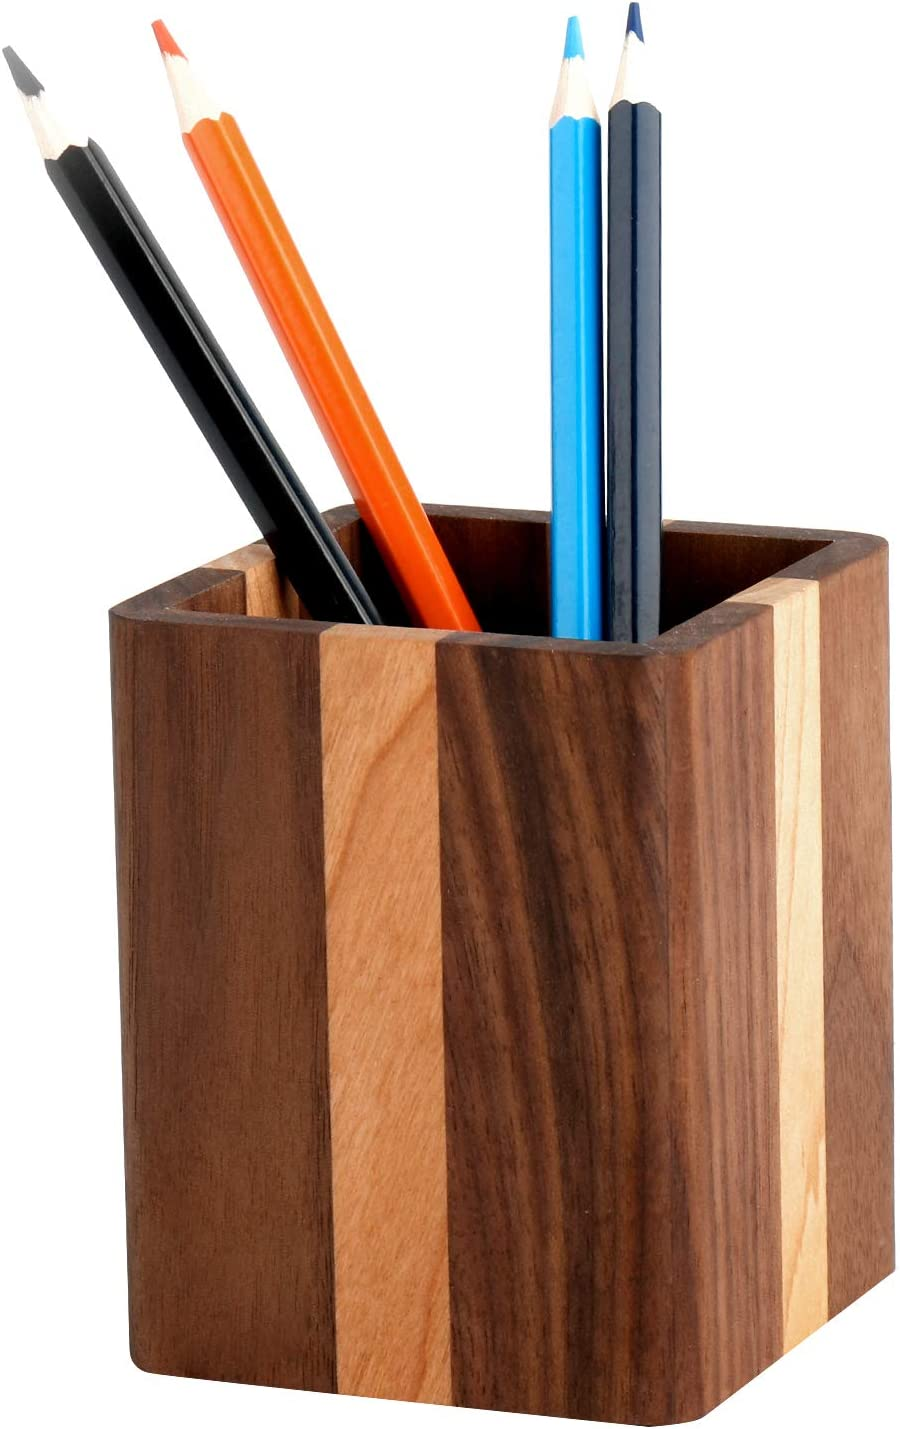 YOYAI Natural Wood Desk Pen Holder Pencil Organizer Desktop Office Pencils Stand Holder Simple(Cherry center walnut side)